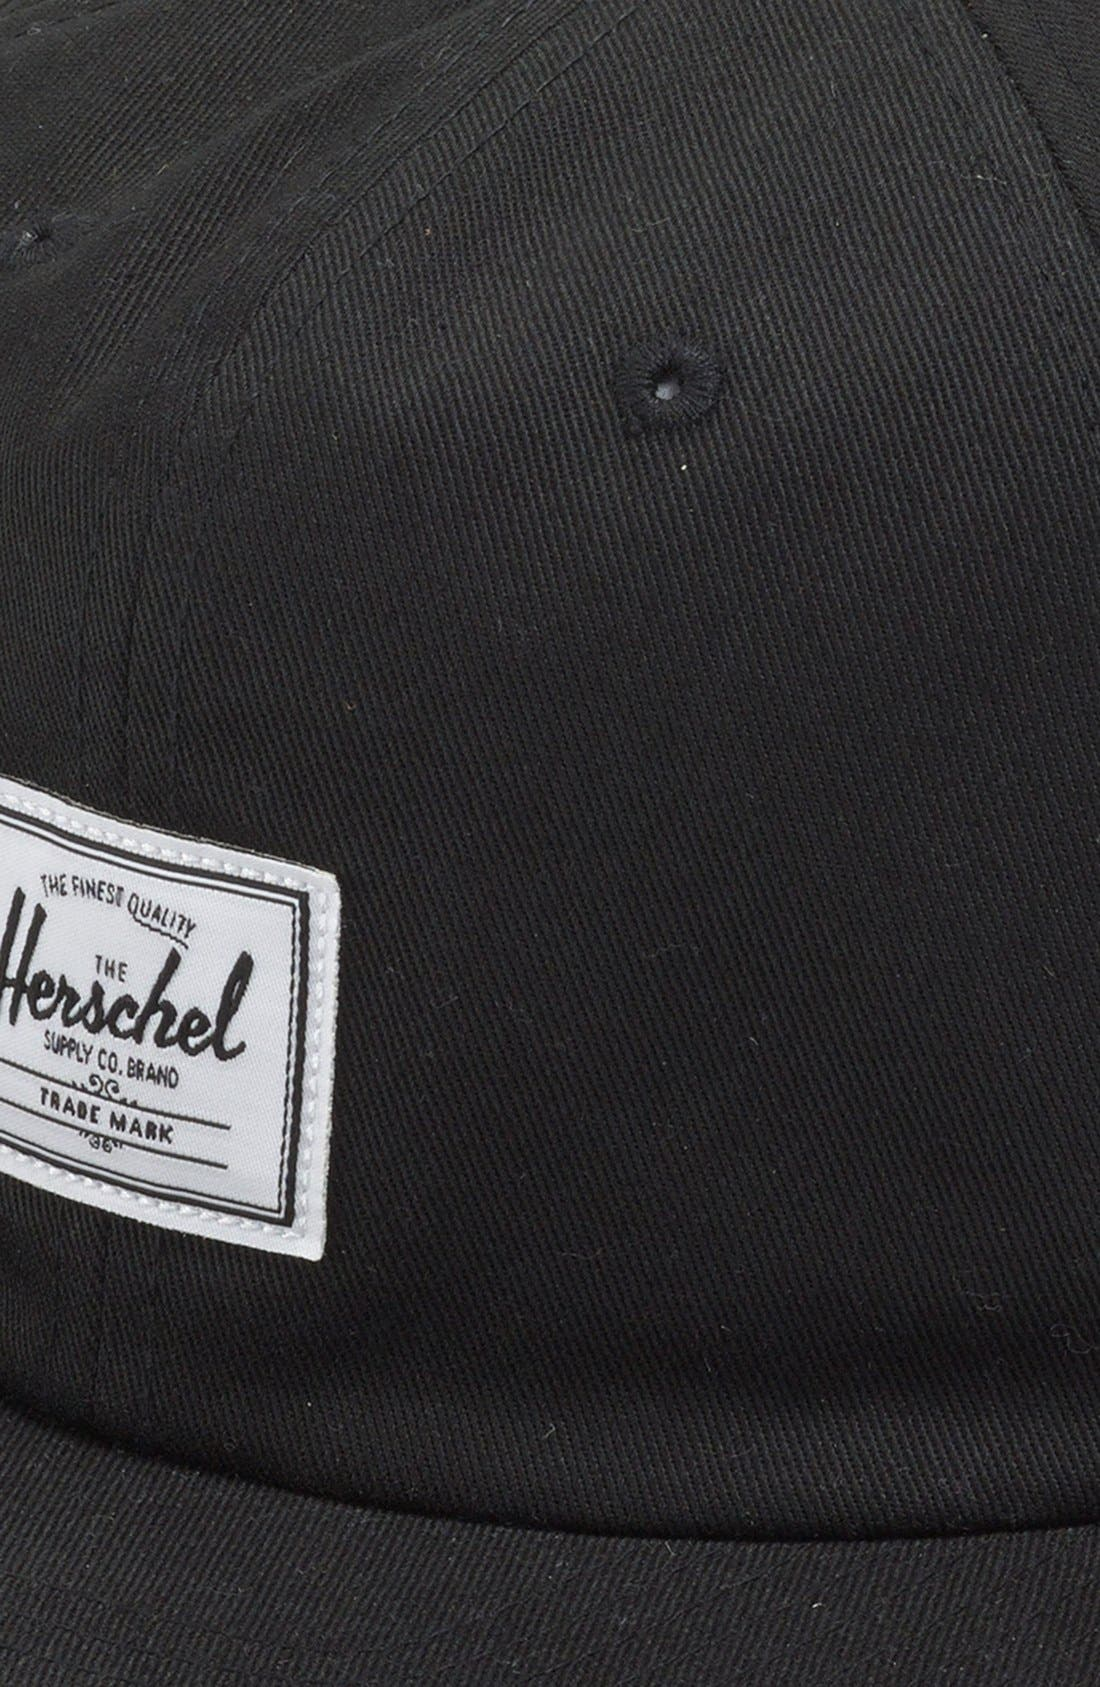 'Albert' Ball Cap,                             Alternate thumbnail 2, color,                             Black